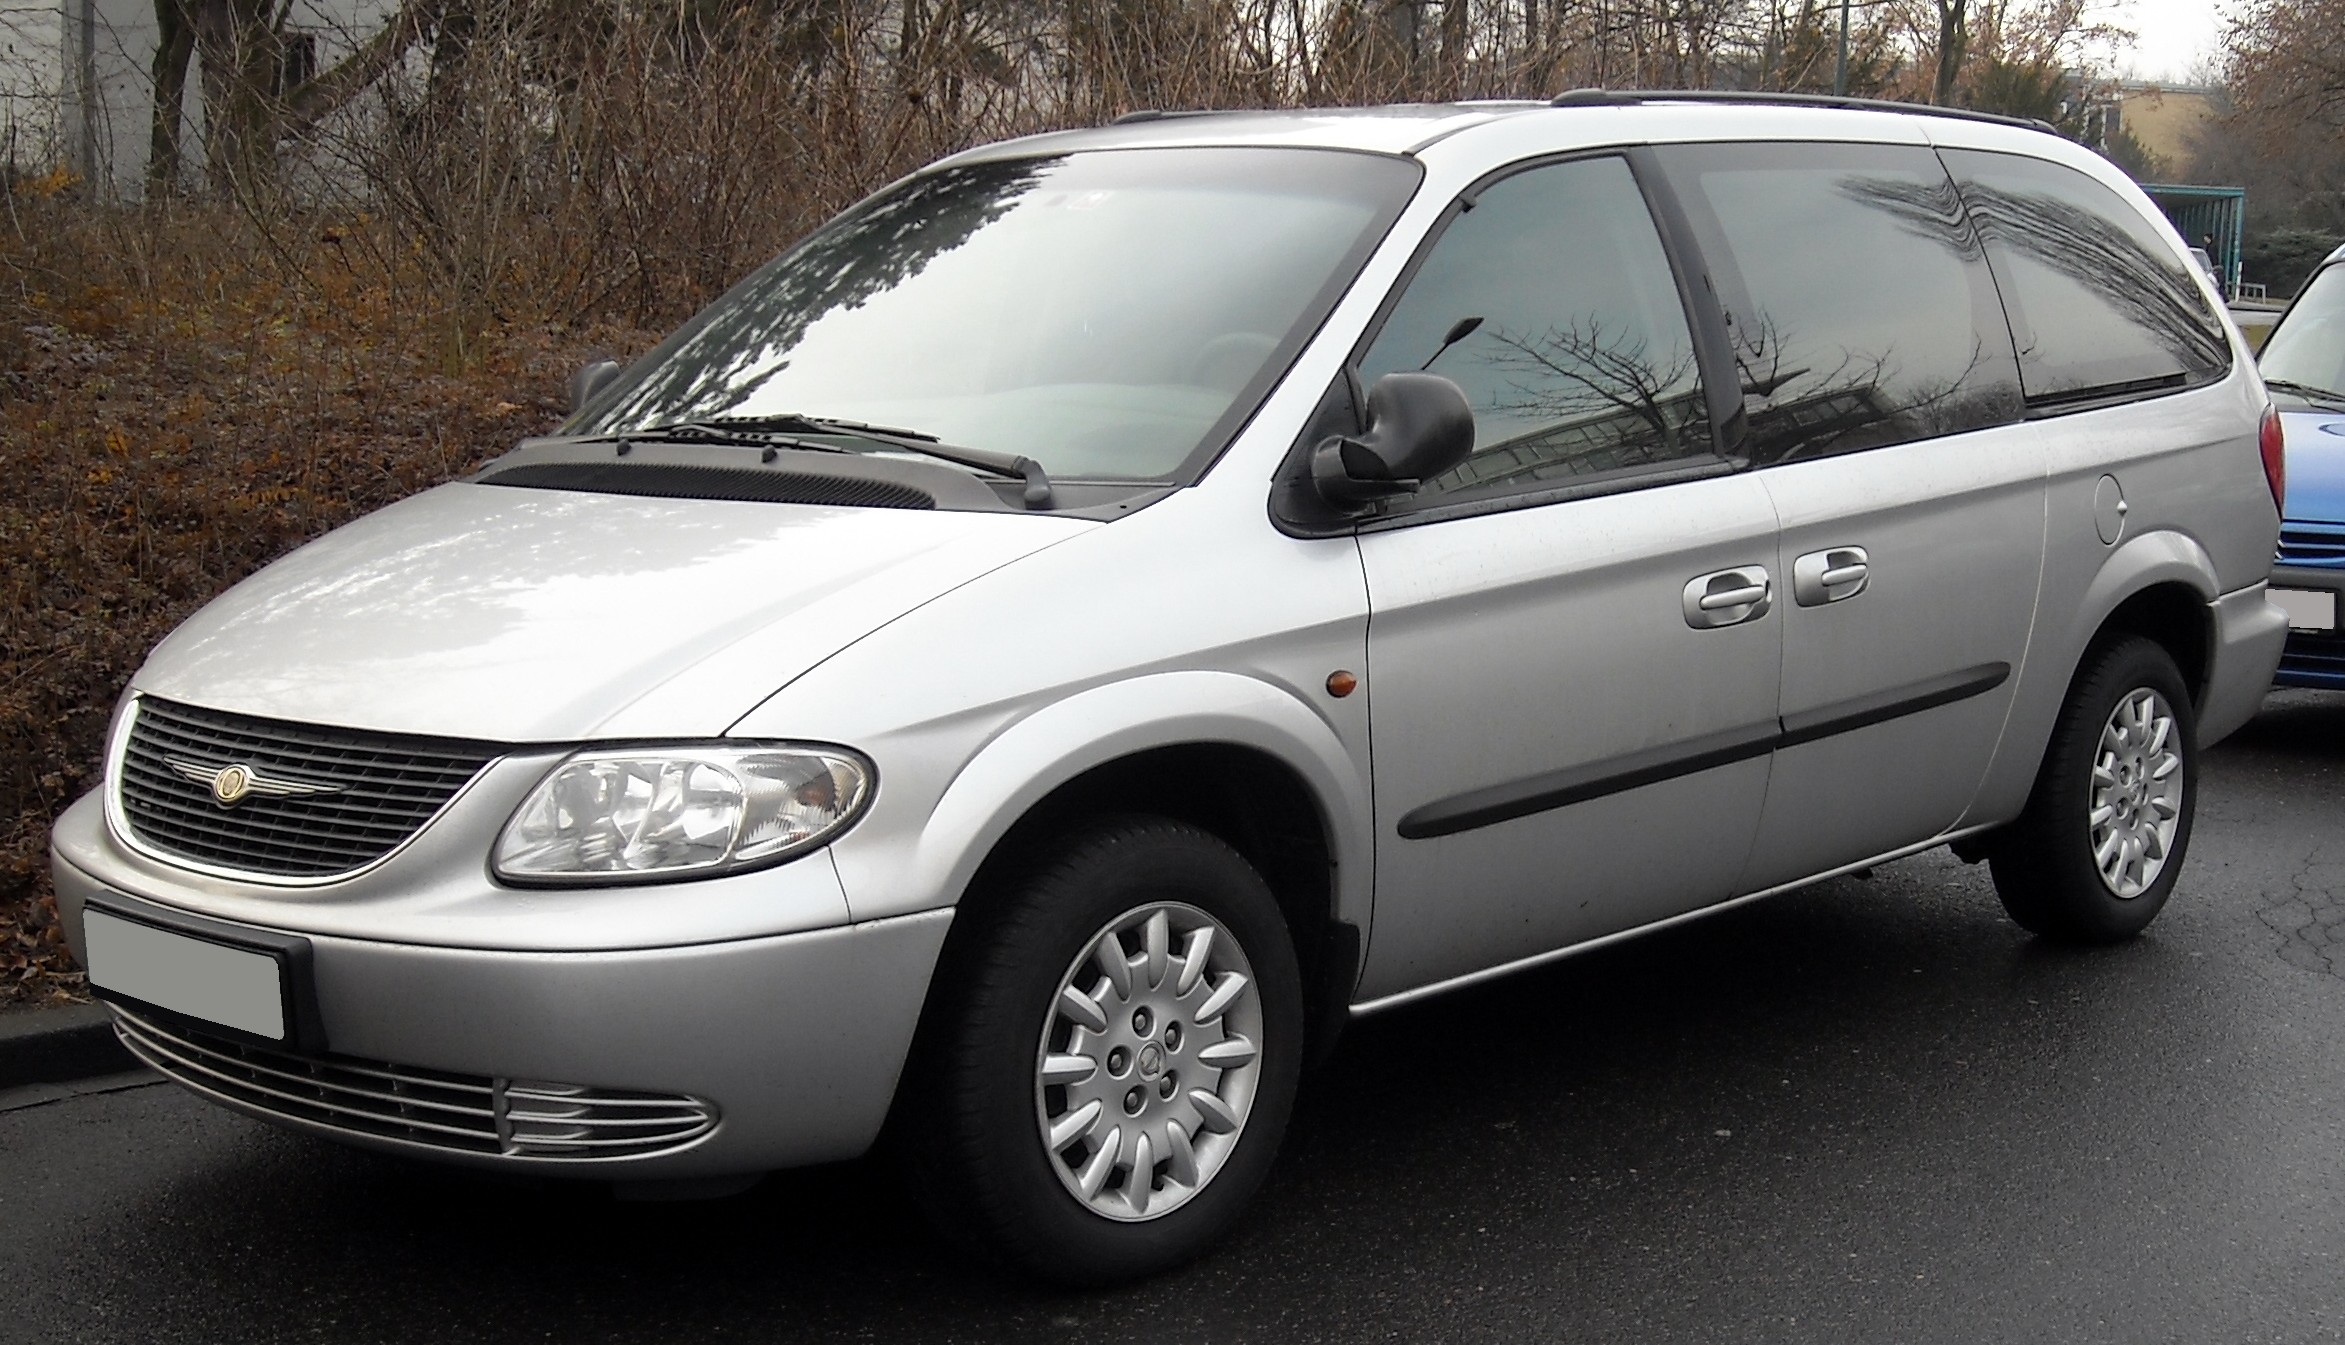 chrysler voyager review and photos. Black Bedroom Furniture Sets. Home Design Ideas